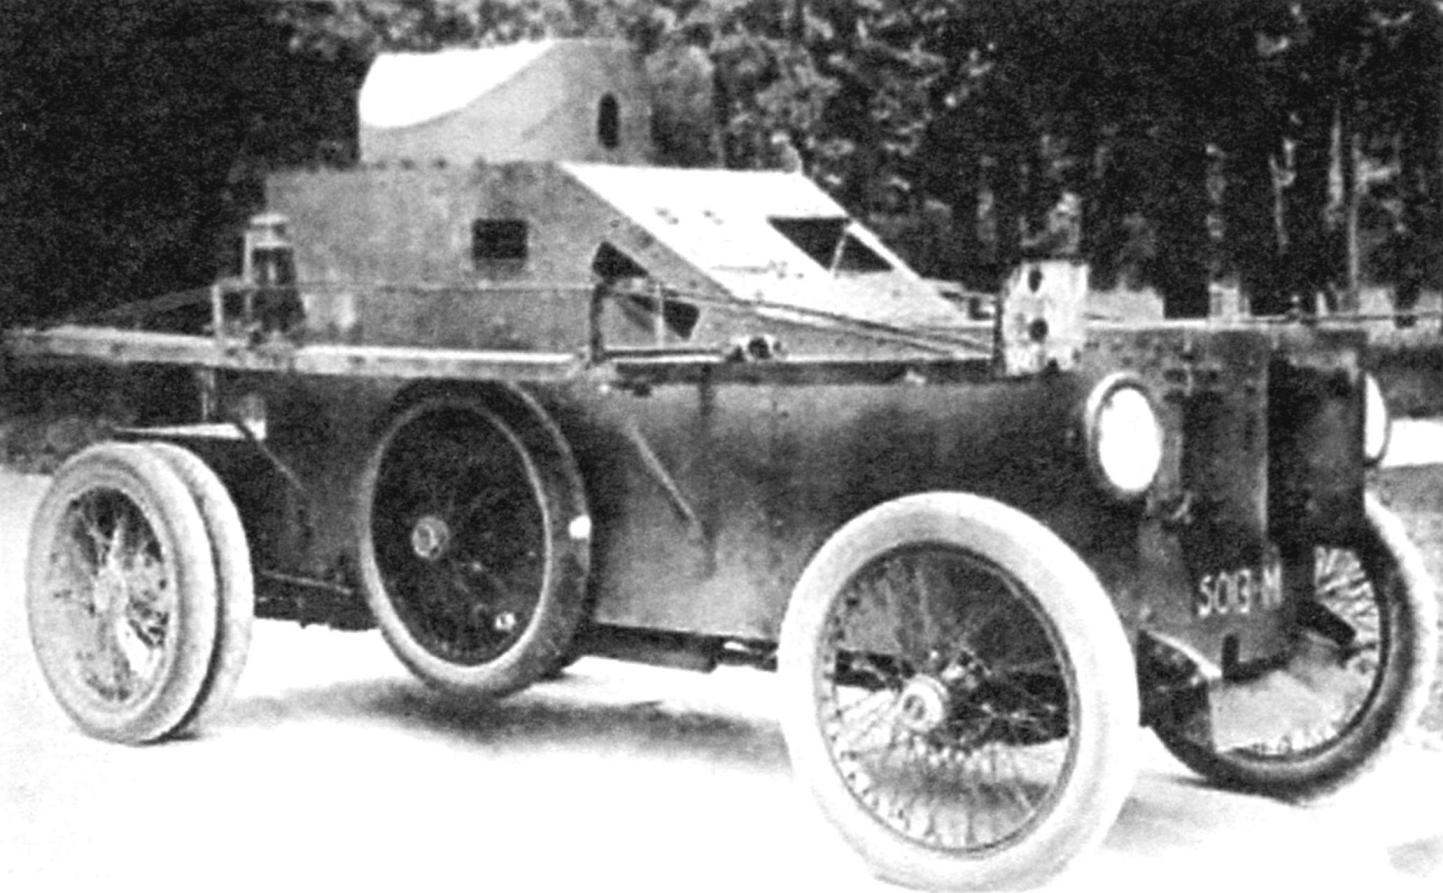 Armored vehicle, the King Armored Car. 1915, composed of the 1st armored car battalion, U.S. army machine served in Haiti and Santo Domingo from 1919 to 1927.